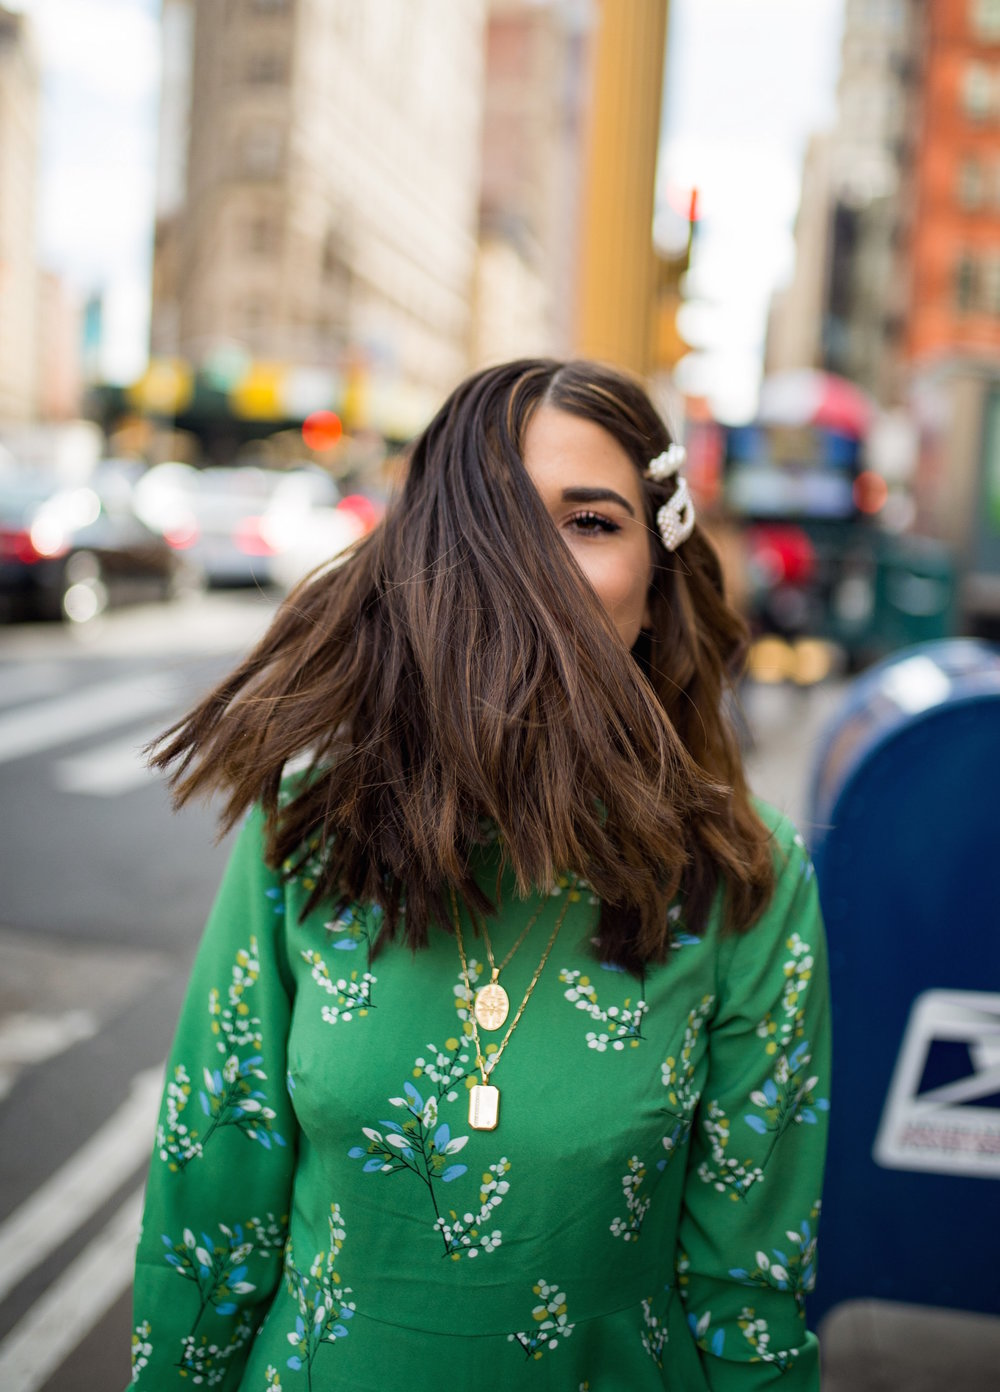 Fresh Cut And Color Sharon Dorram Color at Sally Hershberger Esther Santer Fashion Blog NYC Street Style Blogger Short Layered Haircut Balayage Honey Highlights New York City Upscale Salon Chop Natural Inspo Clips Pearl Barrettes Hair Accessories.JPG